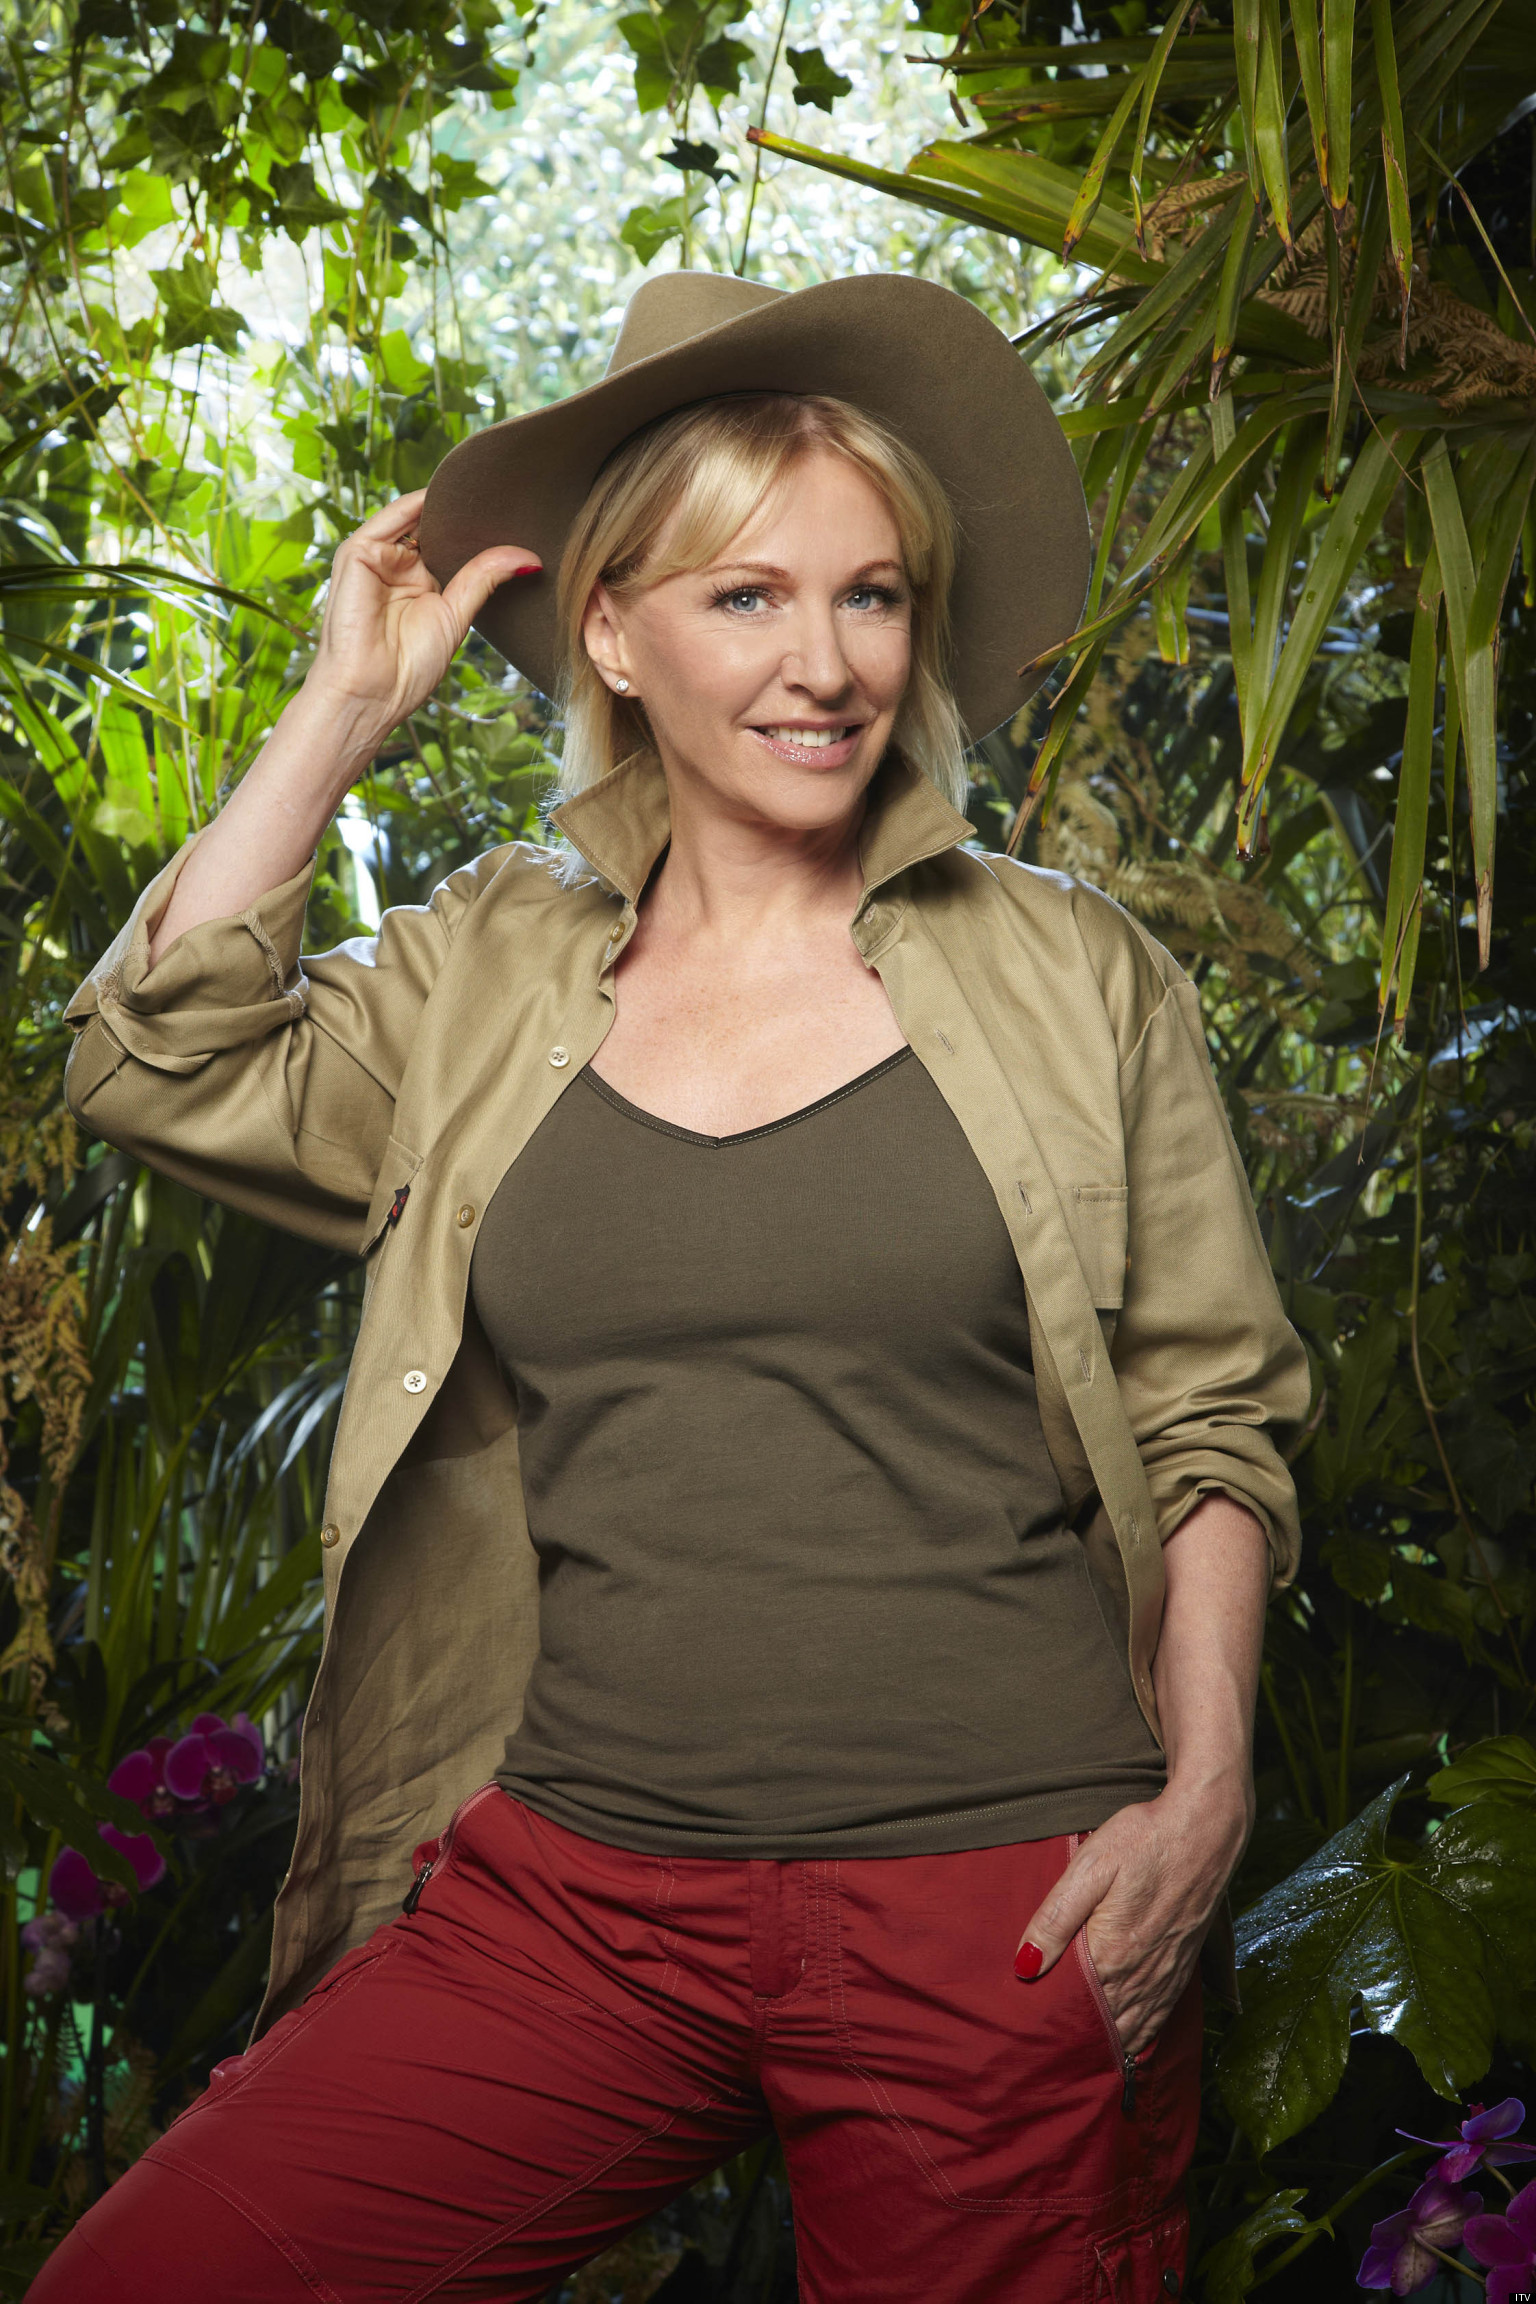 George im a celebrity series 1510